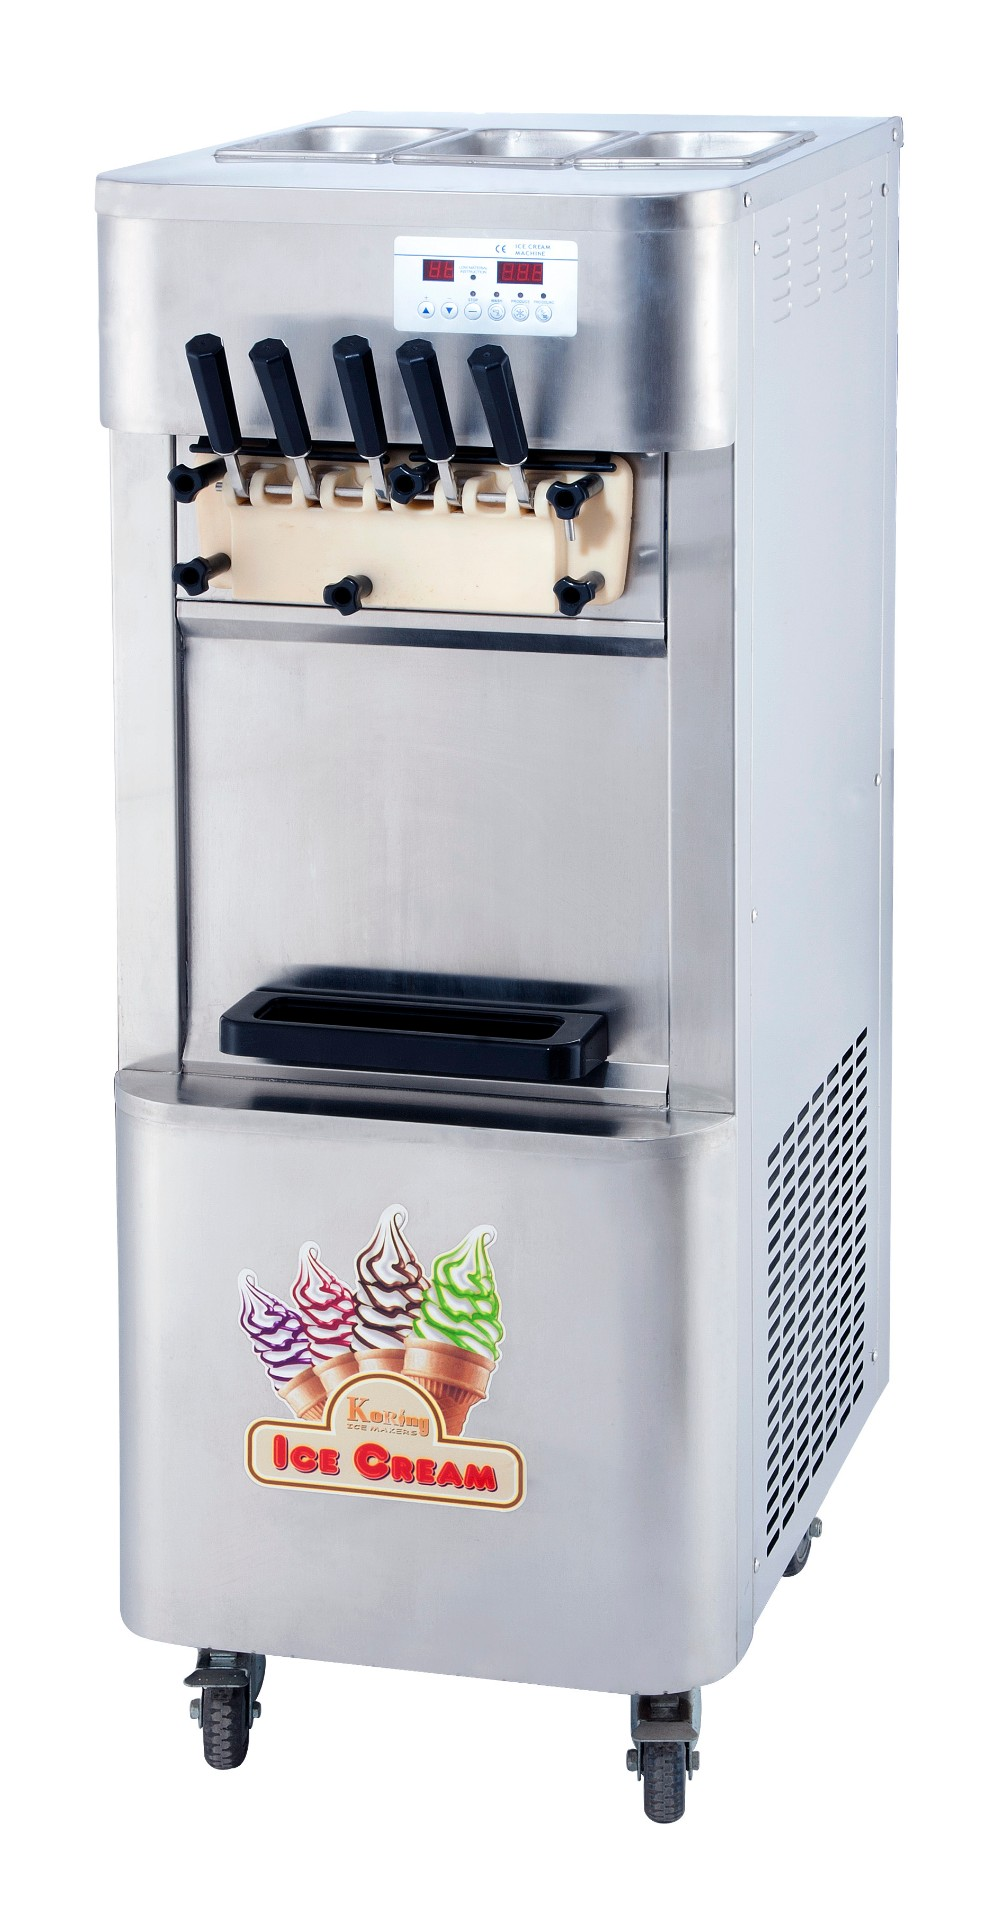 High efficiency ice lolly making machine BPZ-04